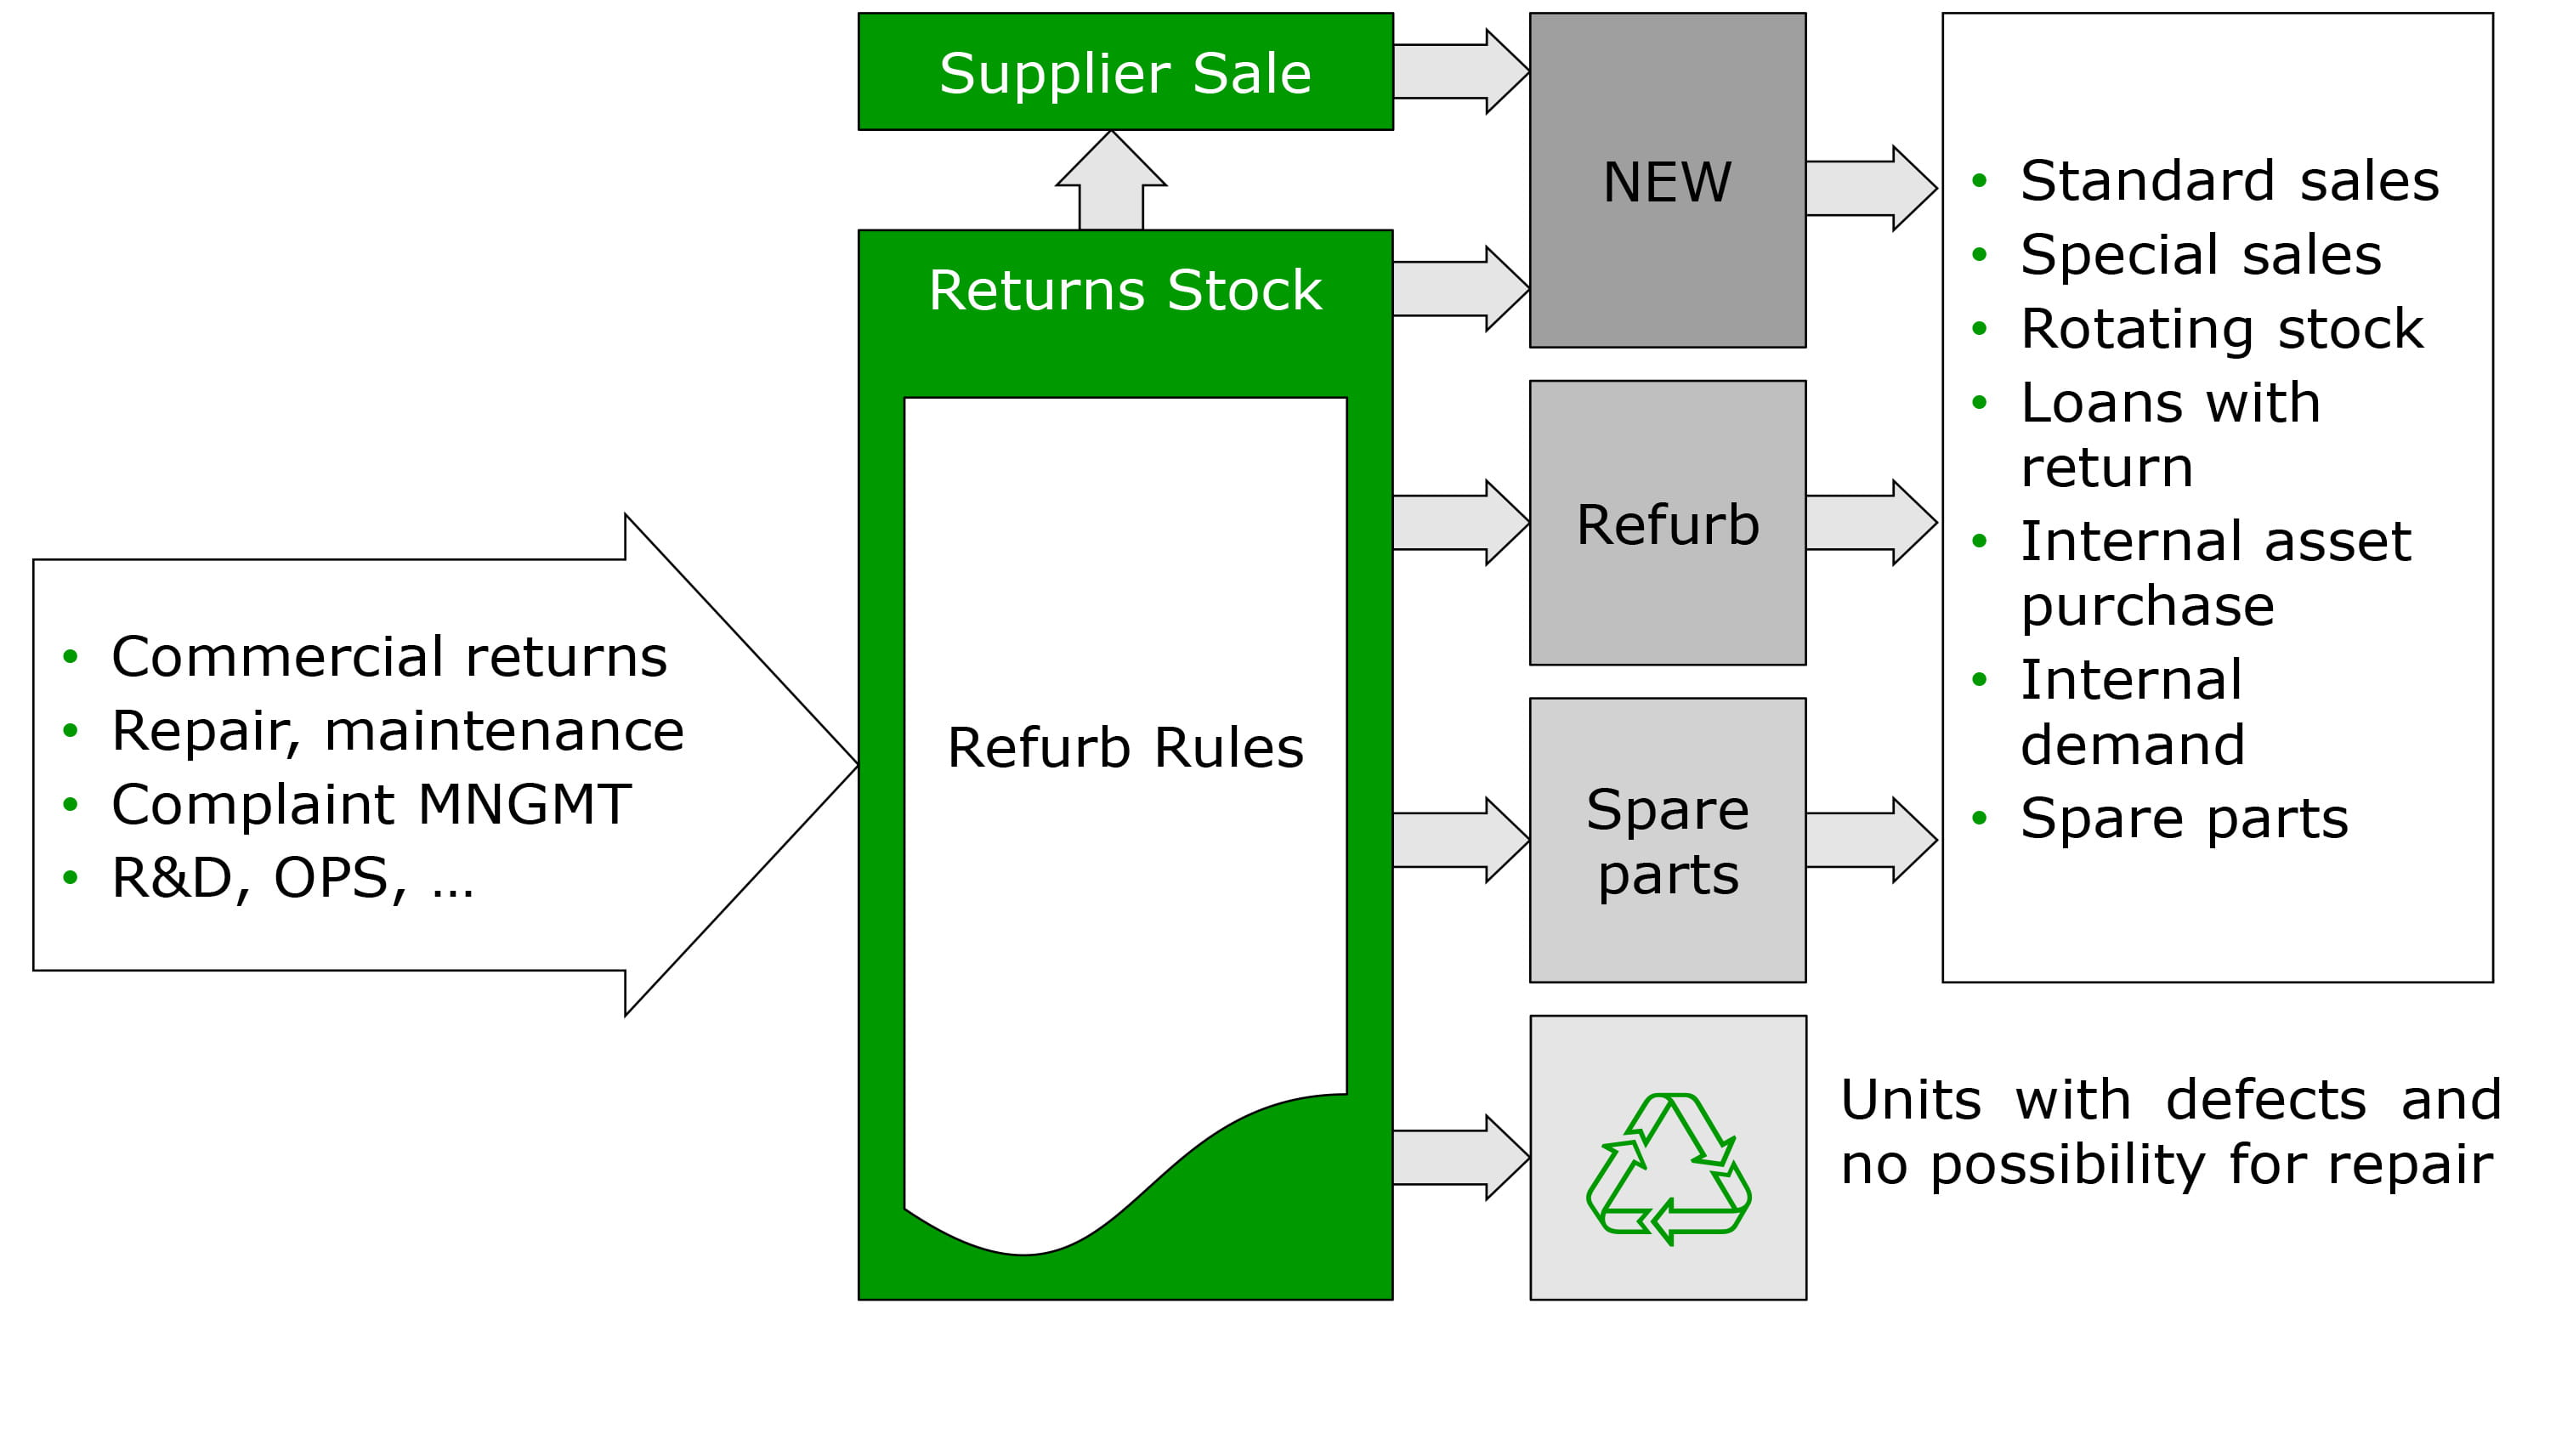 Supplier-Sale refurbishment and reuse process chart